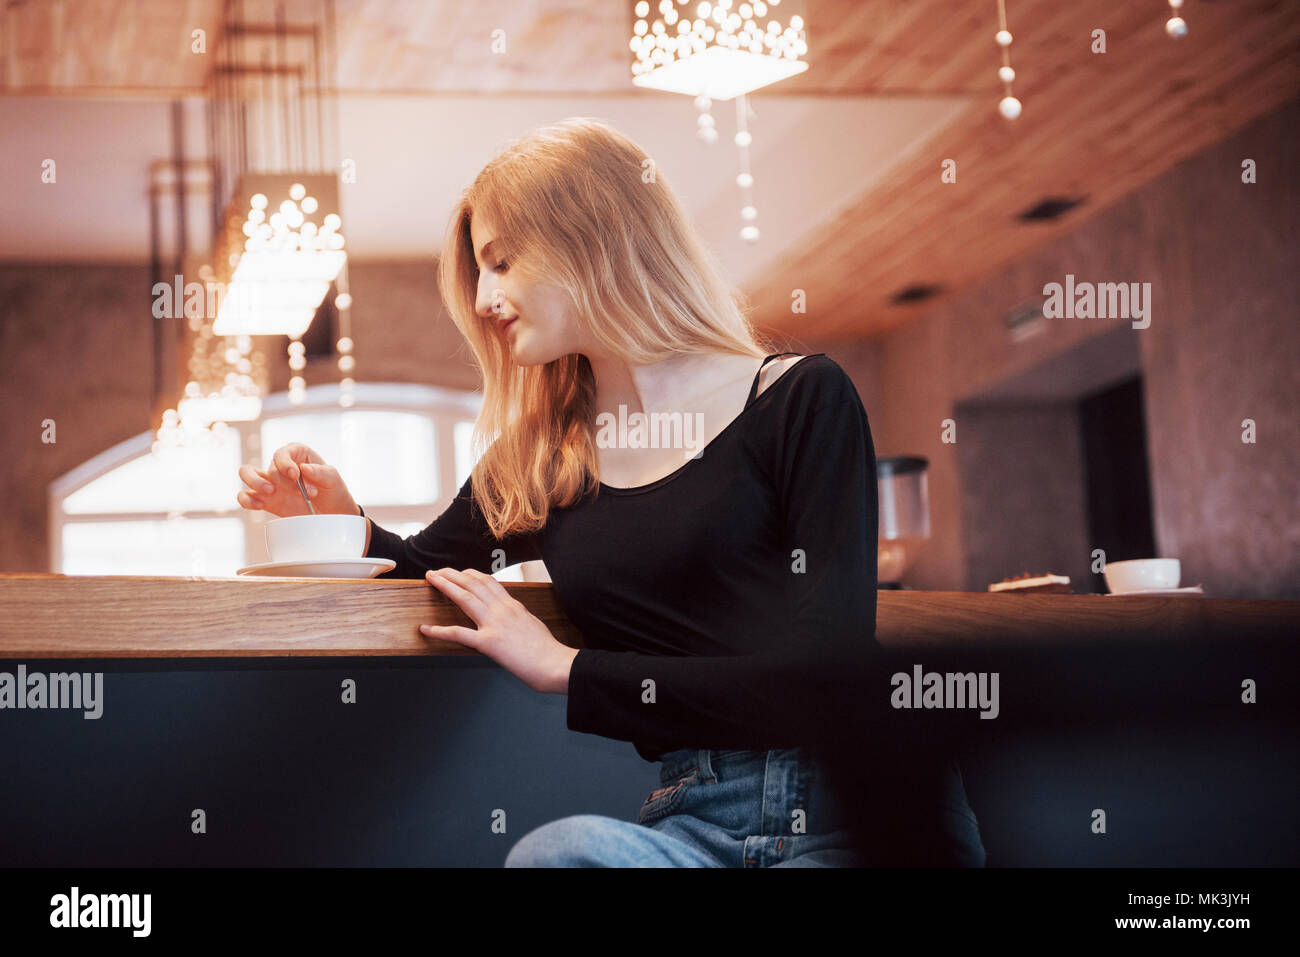 Smiling woman in cafe using mobile phone and texting in social networks, sitting alone - Stock Image